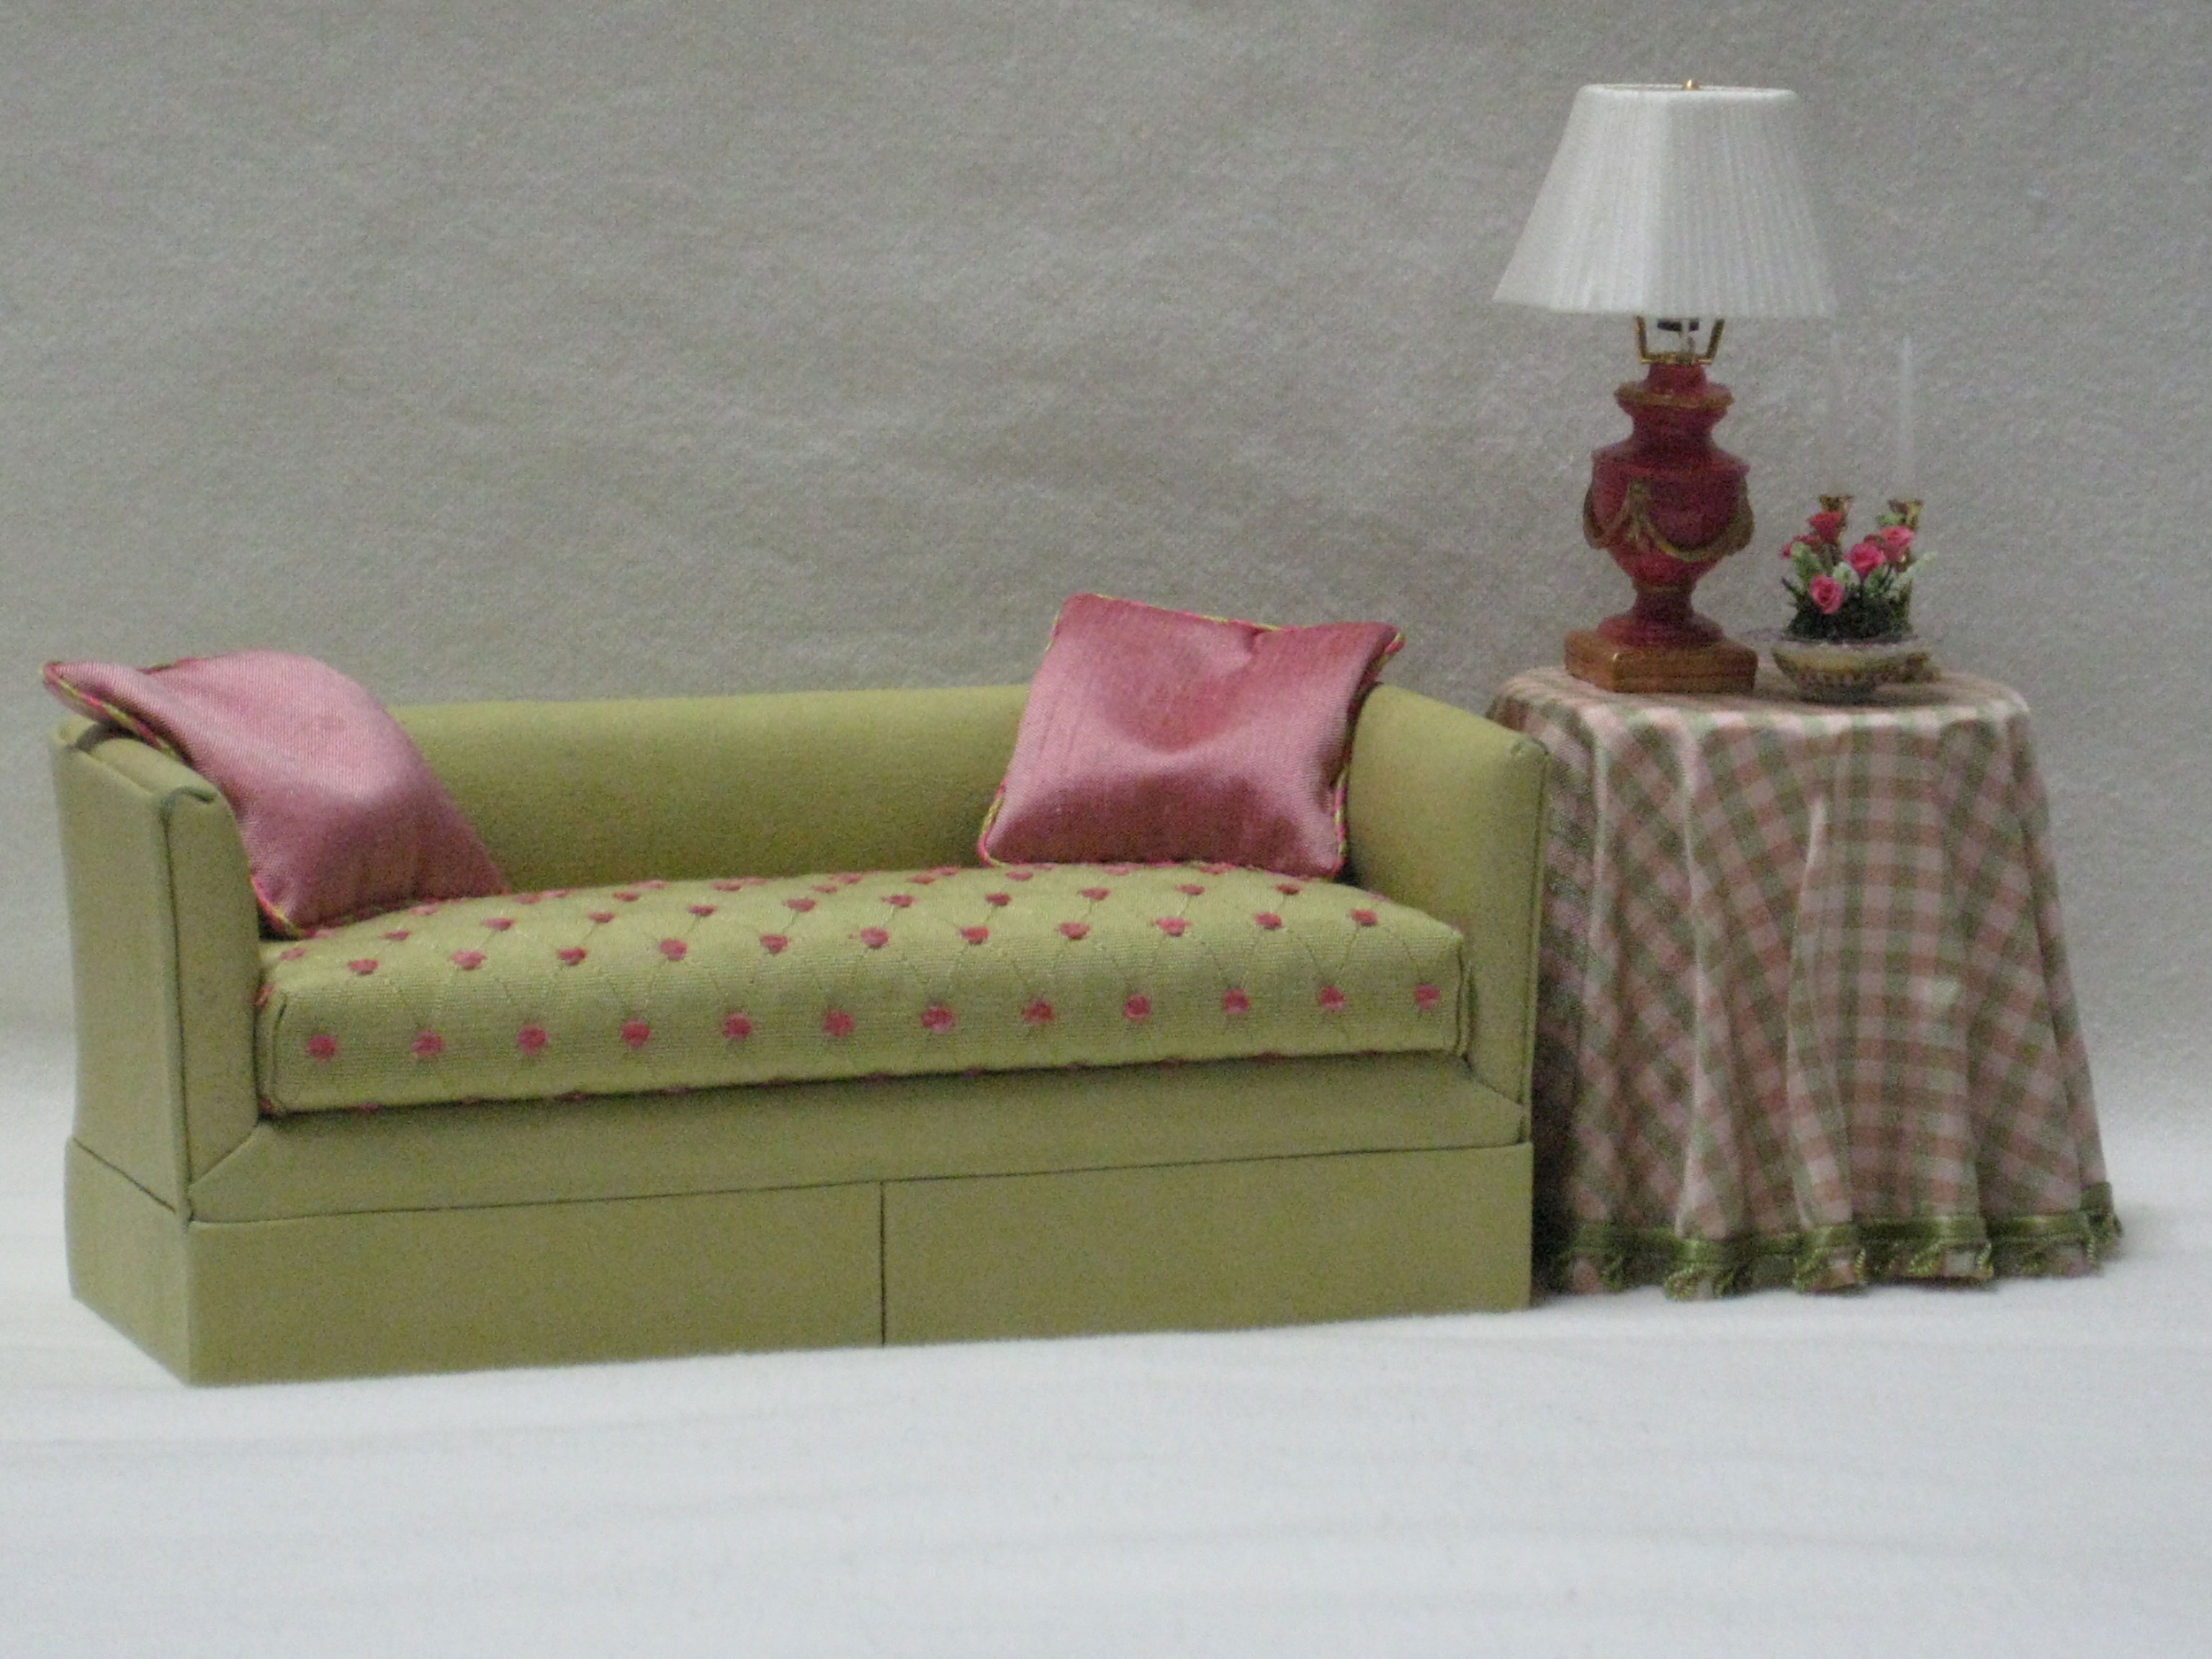 miniature sofa slipcovers clearance 1000 43 images about livingroom on pinterest